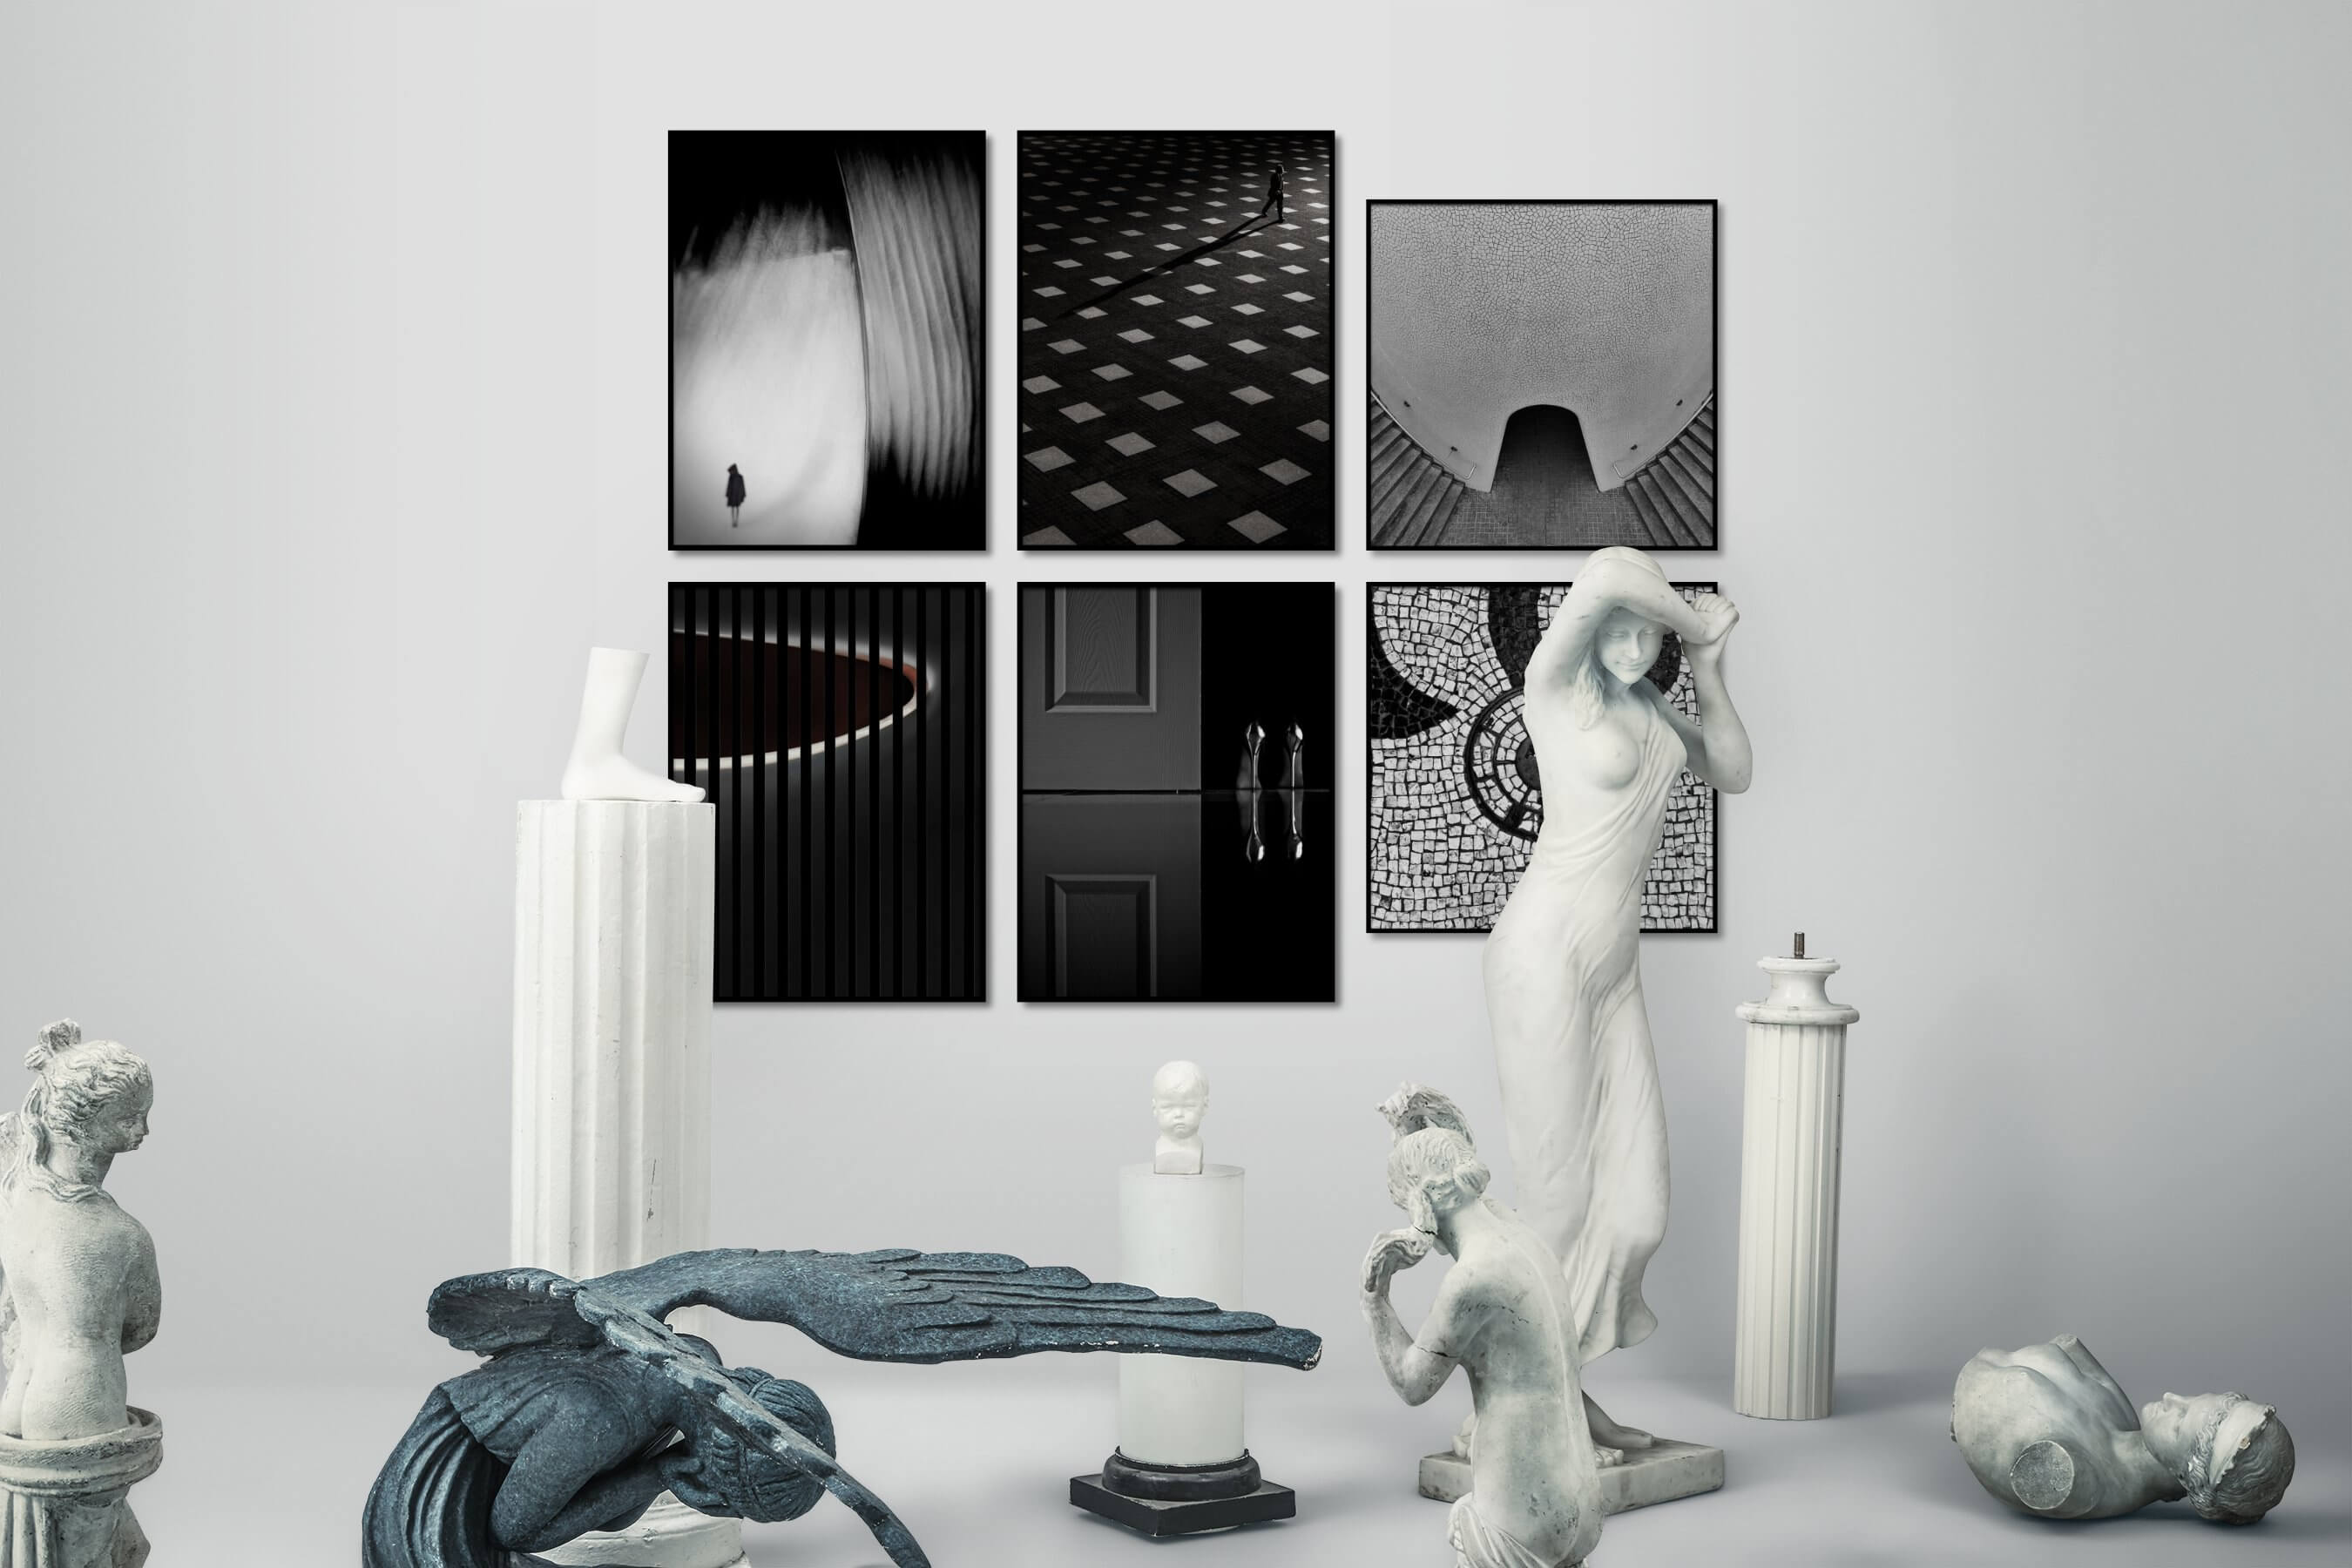 Gallery wall idea with six framed pictures arranged on a wall depicting Artsy, Black & White, For the Moderate, For the Minimalist, Fashion & Beauty, and City Life